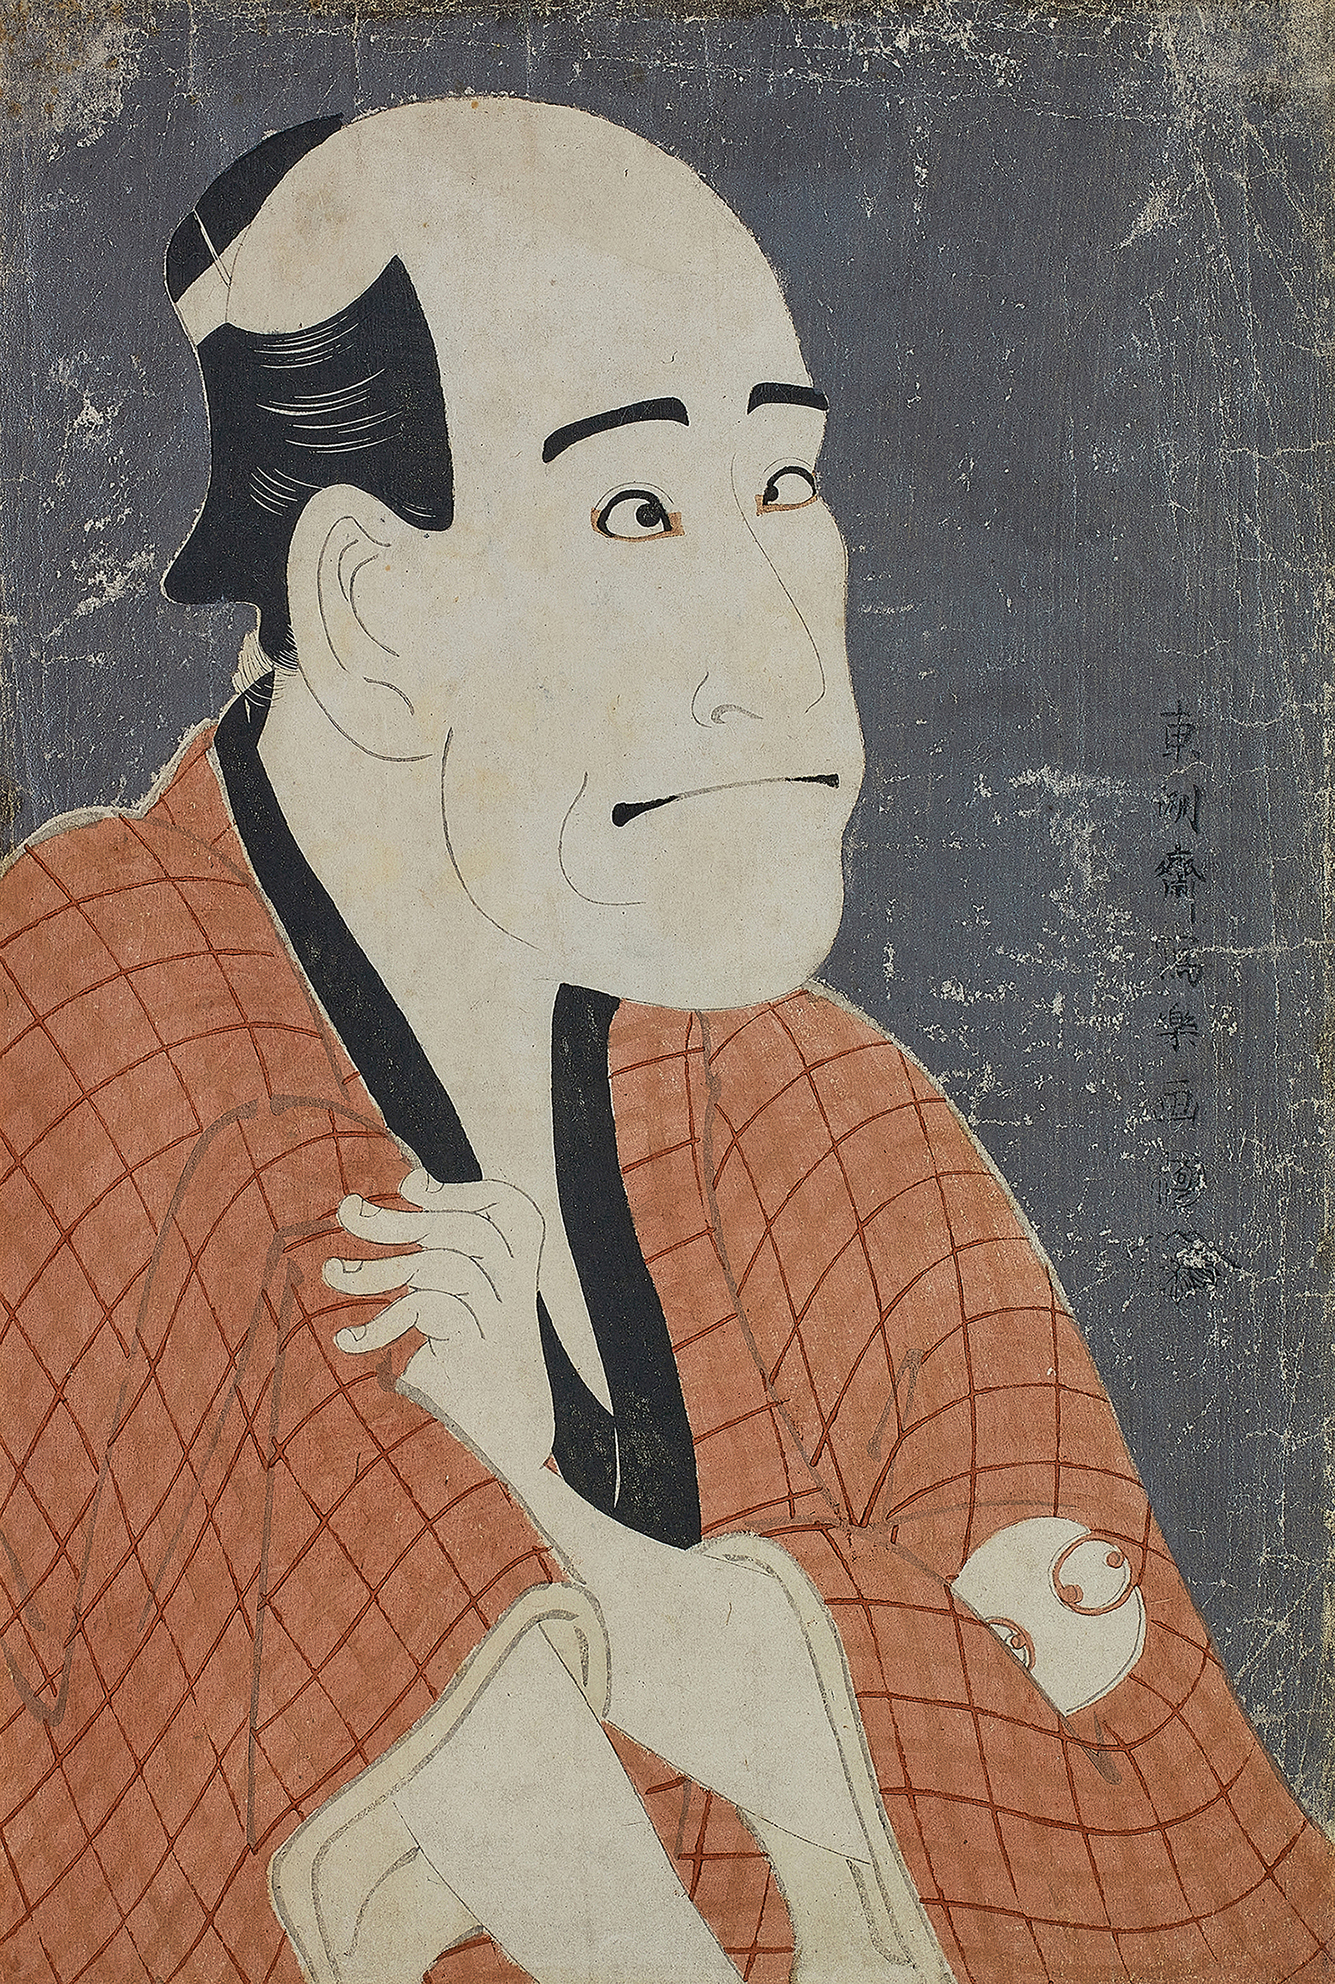 TÔSHÛSAI SHARAKU (ACTIVE 1794–1795) ACTOR ARASHI RYÛZÔ II AS THE MONEYLENDER ISHIBE KINKICHI, EDO PERIOD, LATE 18TH CENTURY, woodblock print (okubi-e): ink, colour and mica on paper, signed Tôshûsai Sharaku ga, published by Tsutaya Jûzaburô (Kôshodô), 1794, with a collector's seal TSN (Theodor Scheiwe) Vertical ôban: 36.5 x 24.5 cm., 14 3/8 x 9 5/8 in.